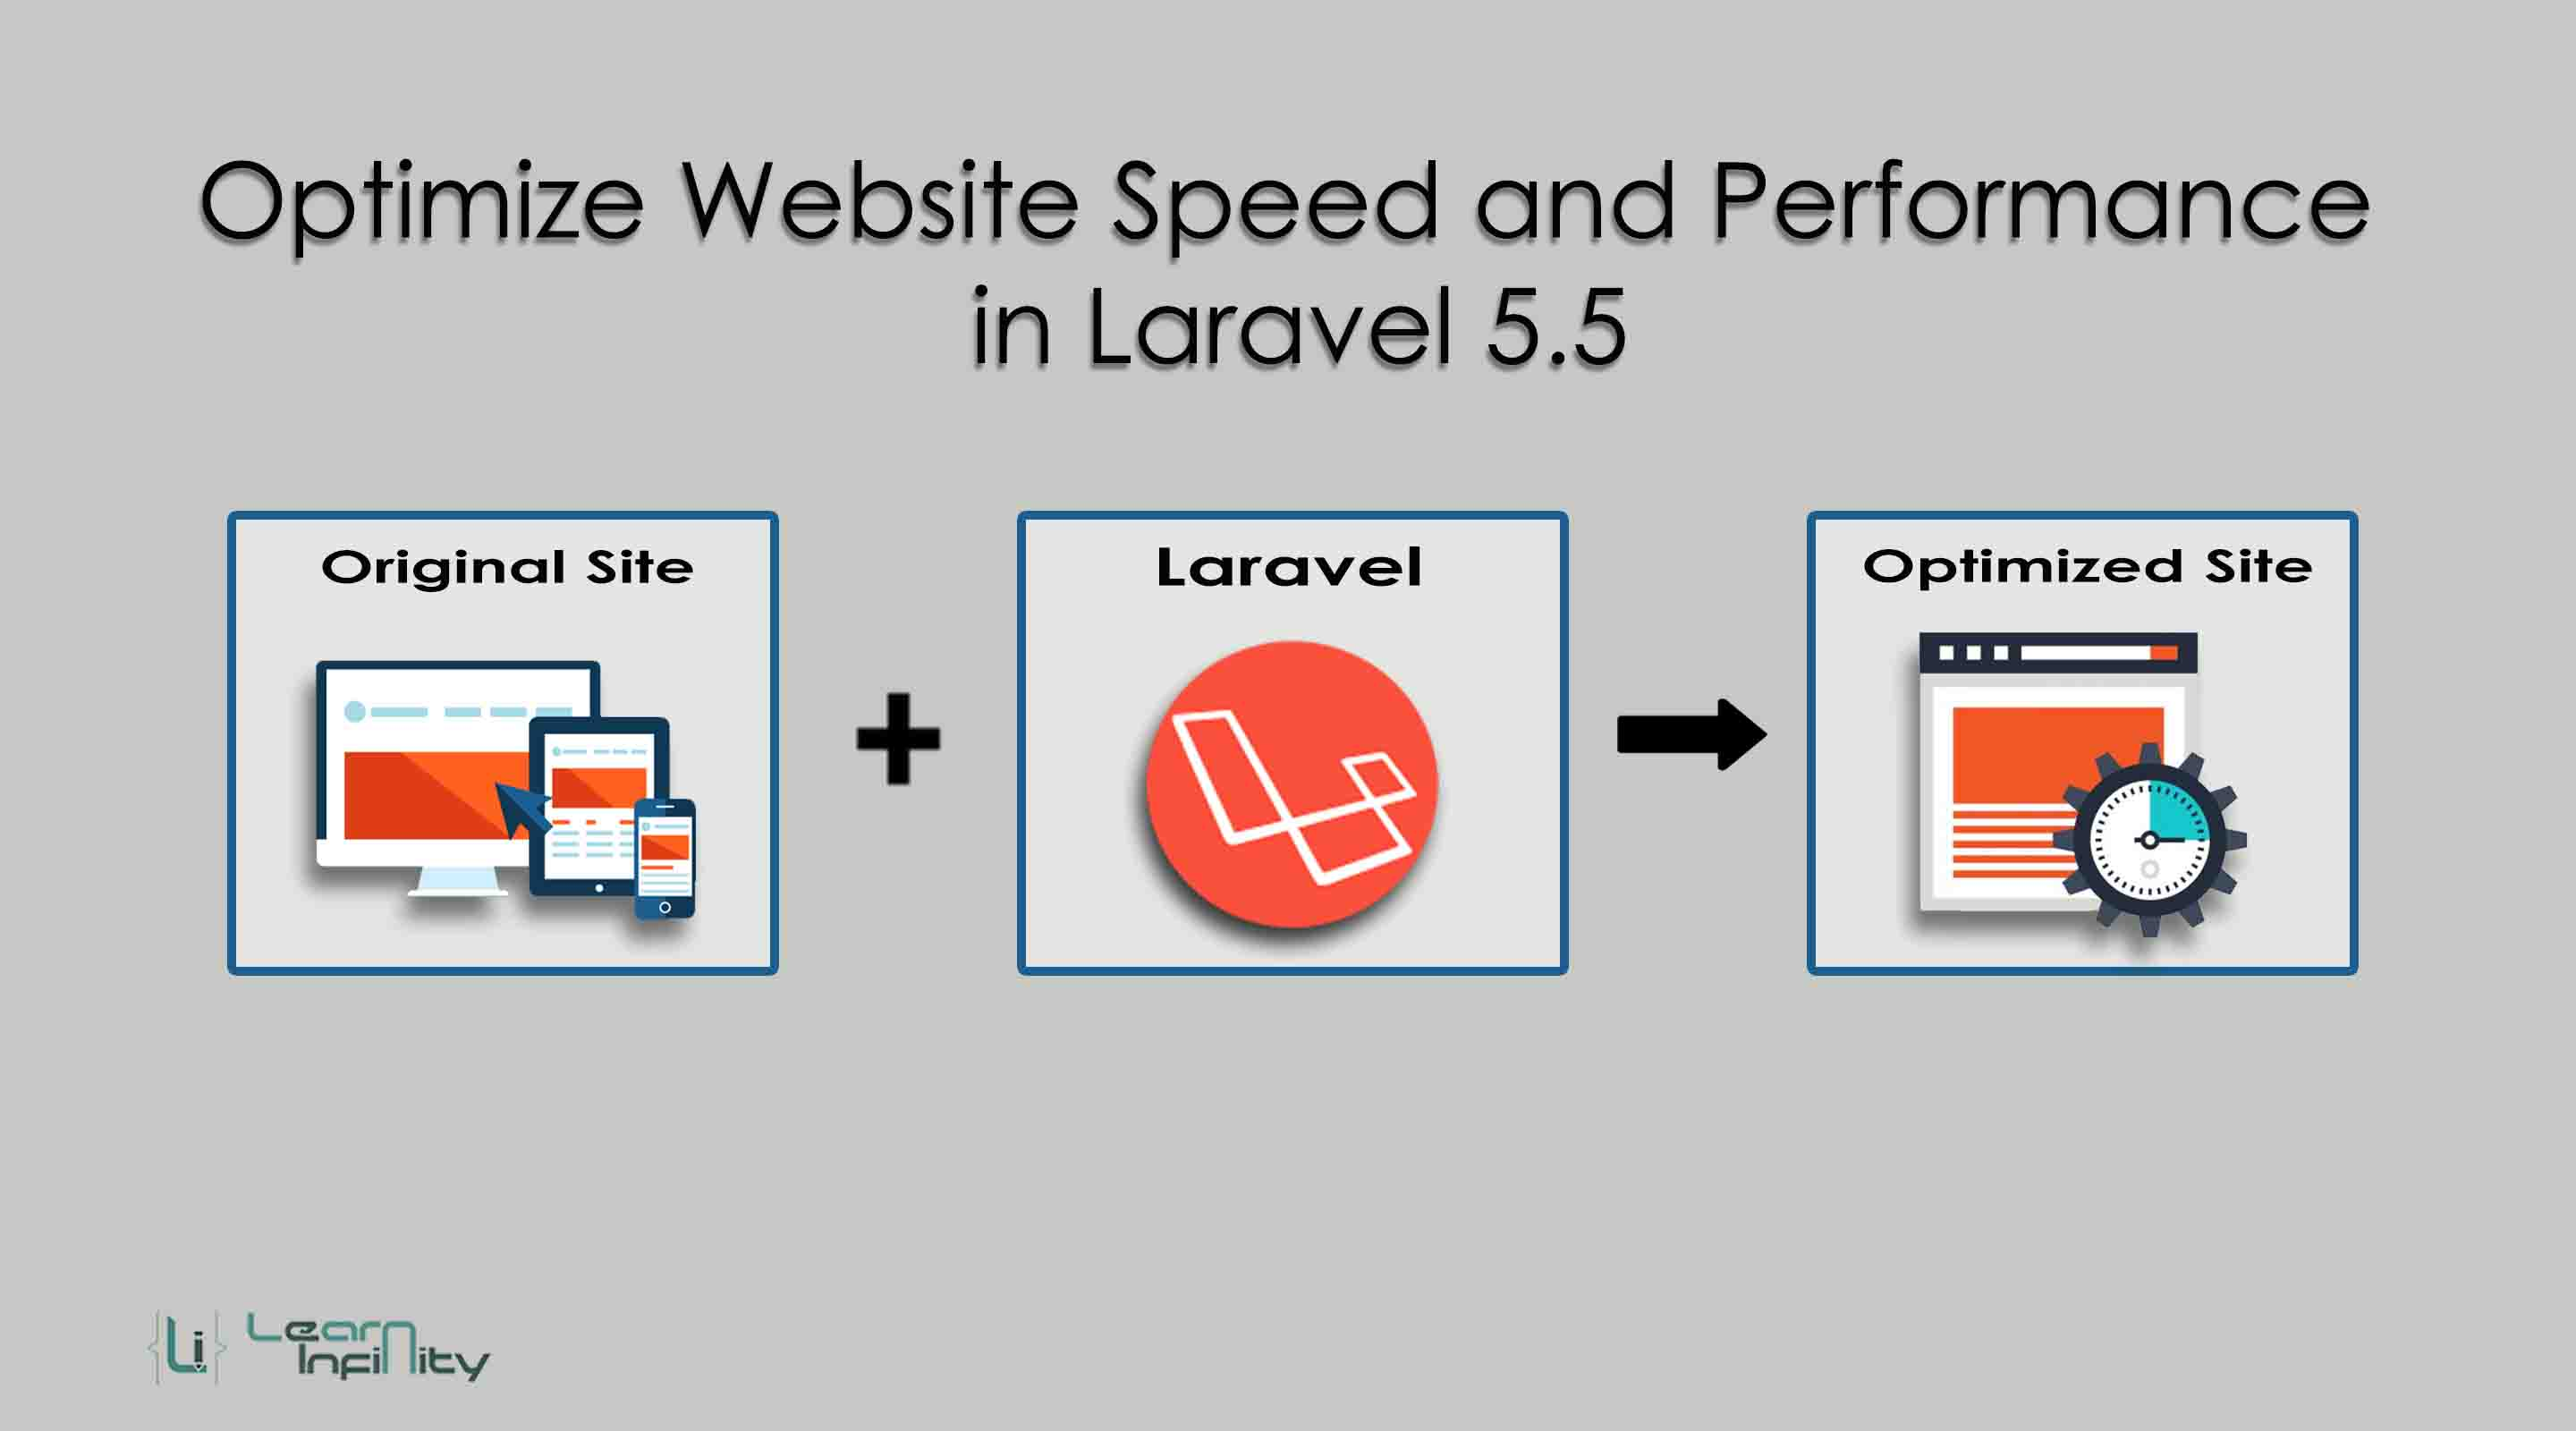 Optimize Website Speed and Performance in Laravel 5.5